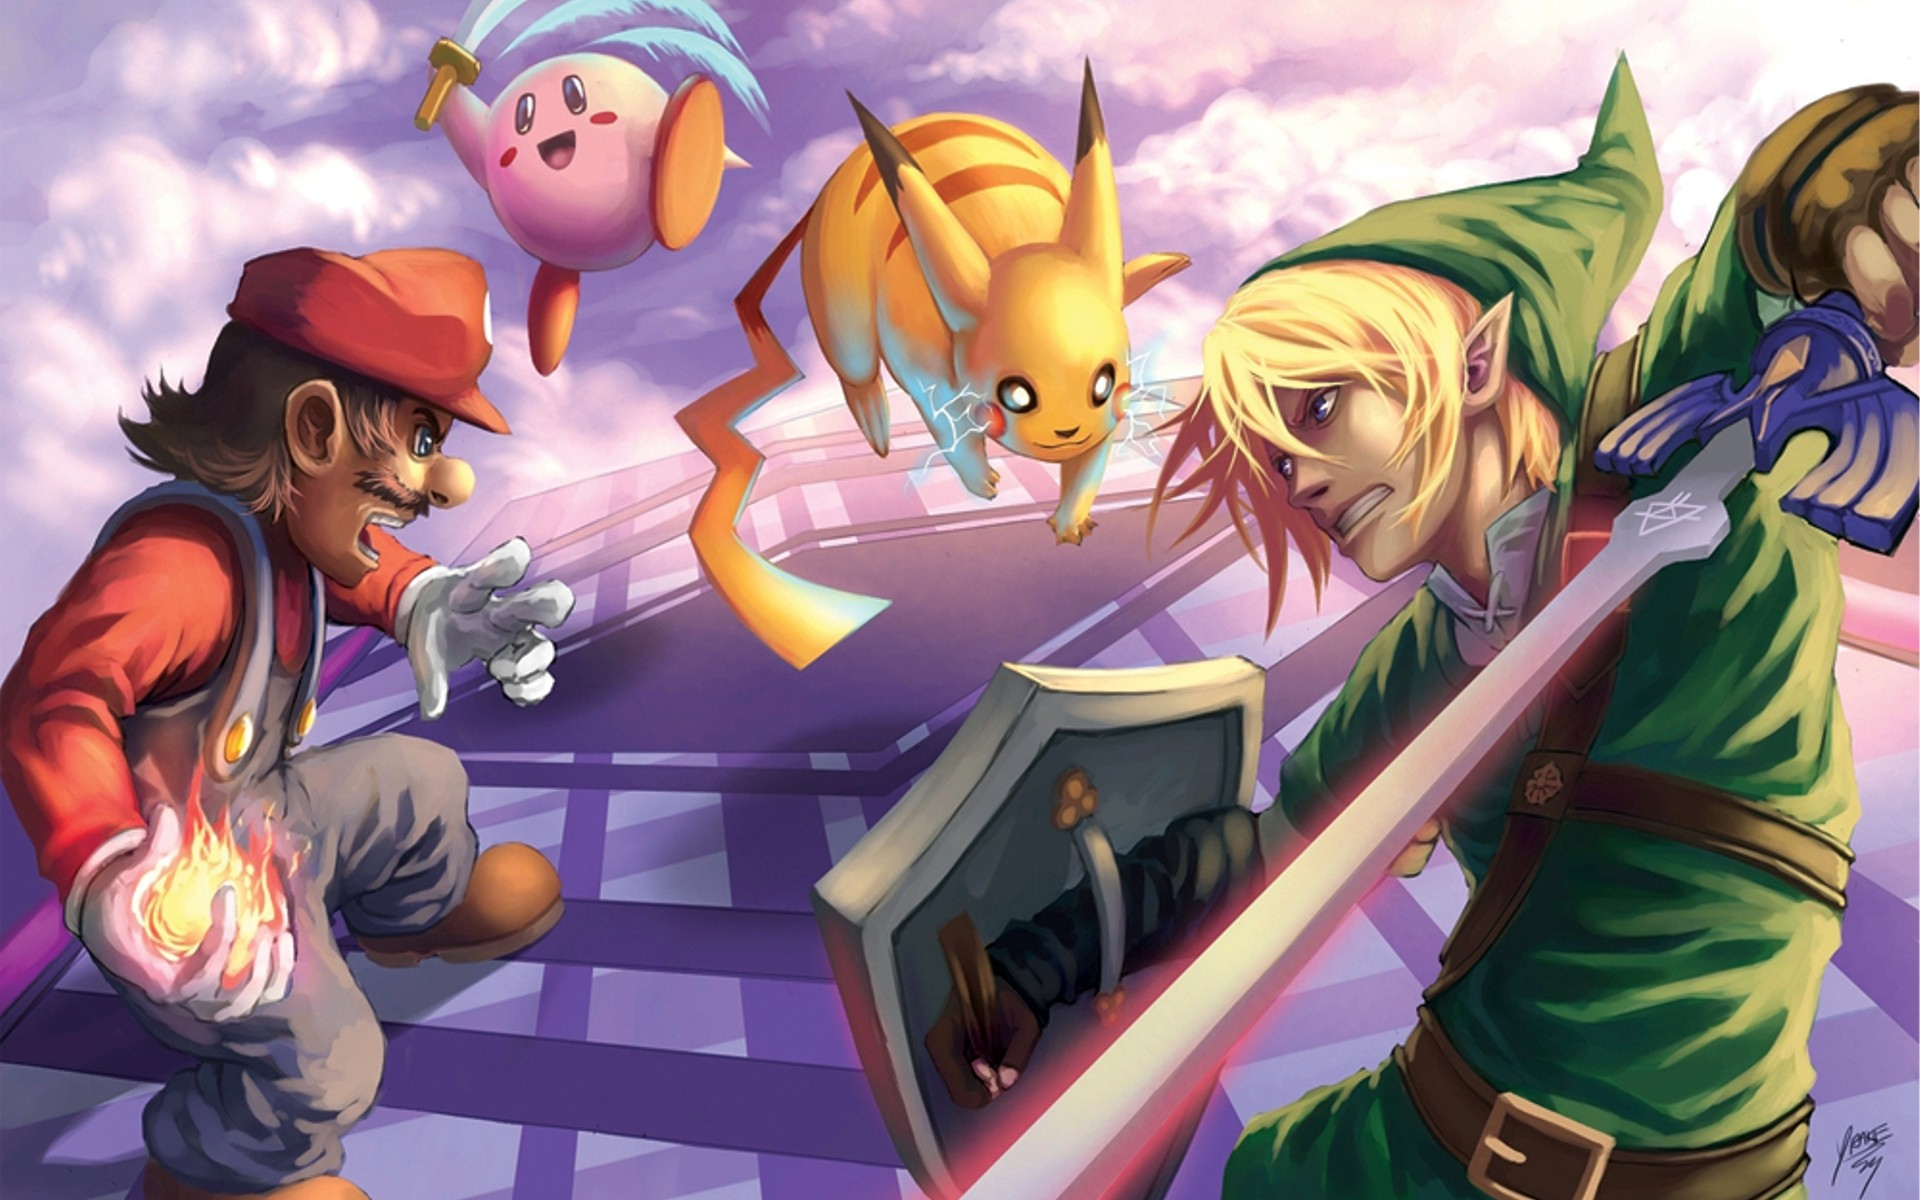 Super Smash Bros Iphone Wallpaper Posted By Ryan Thompson